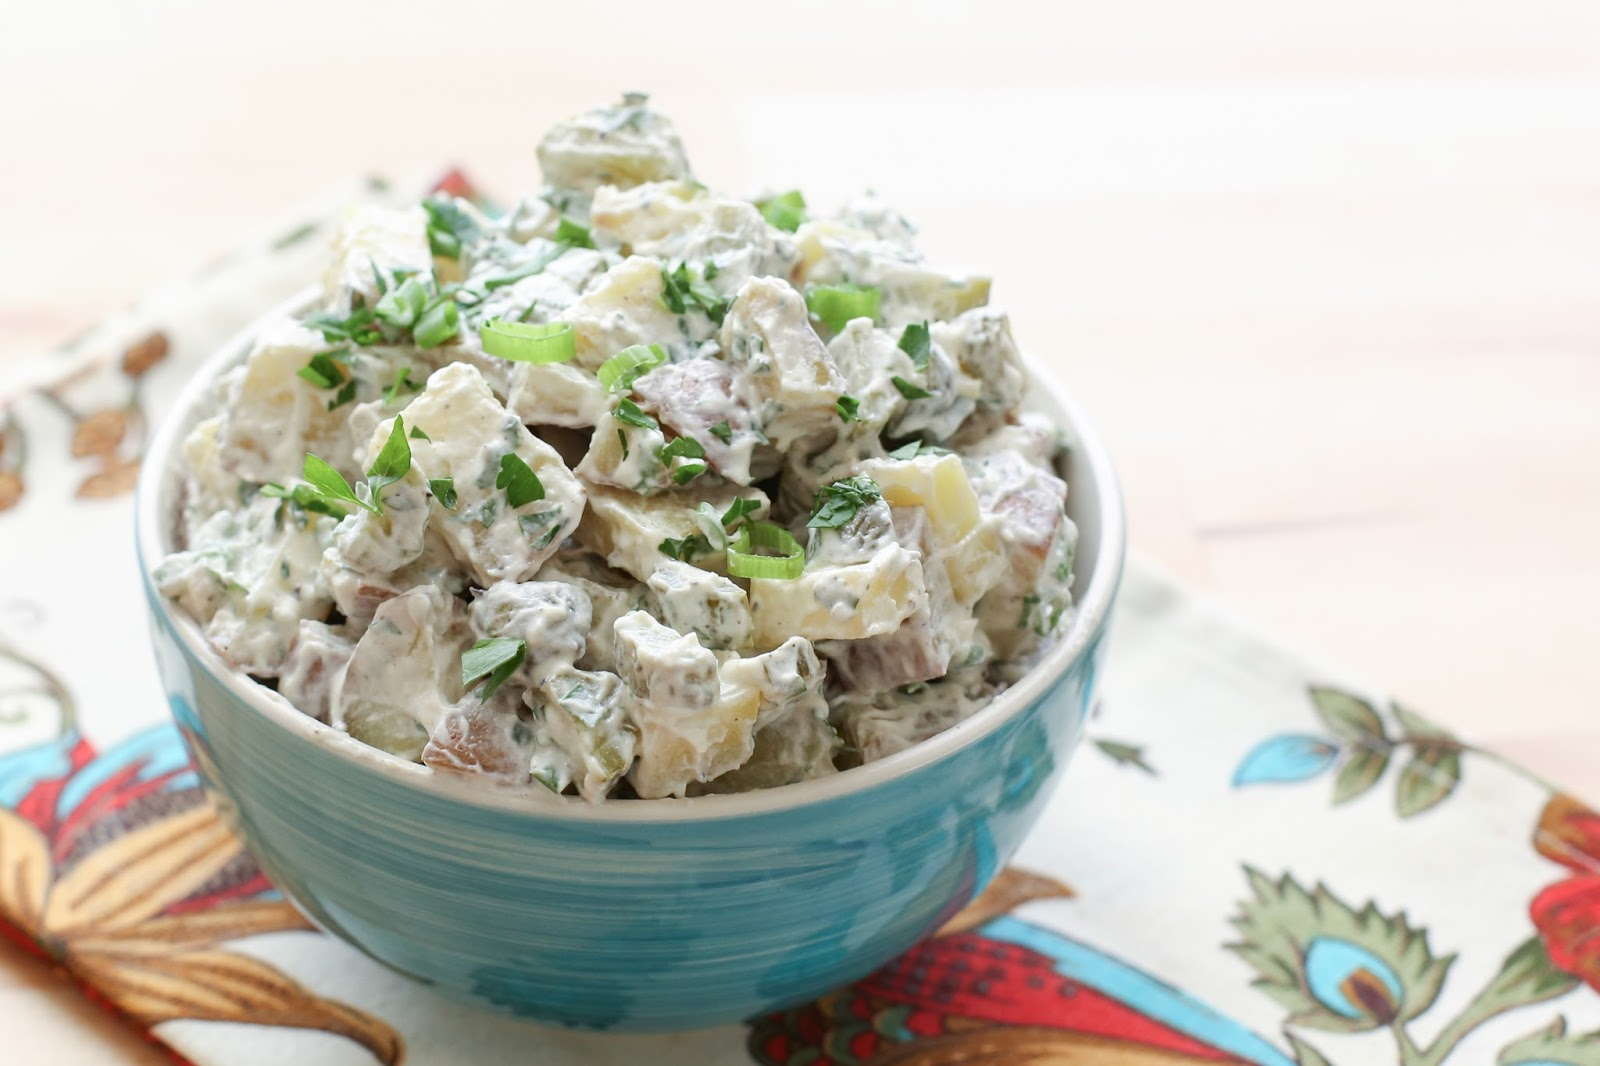 Pickles and Parsley Potato Salad recipe by Barefeet In The Kitchen